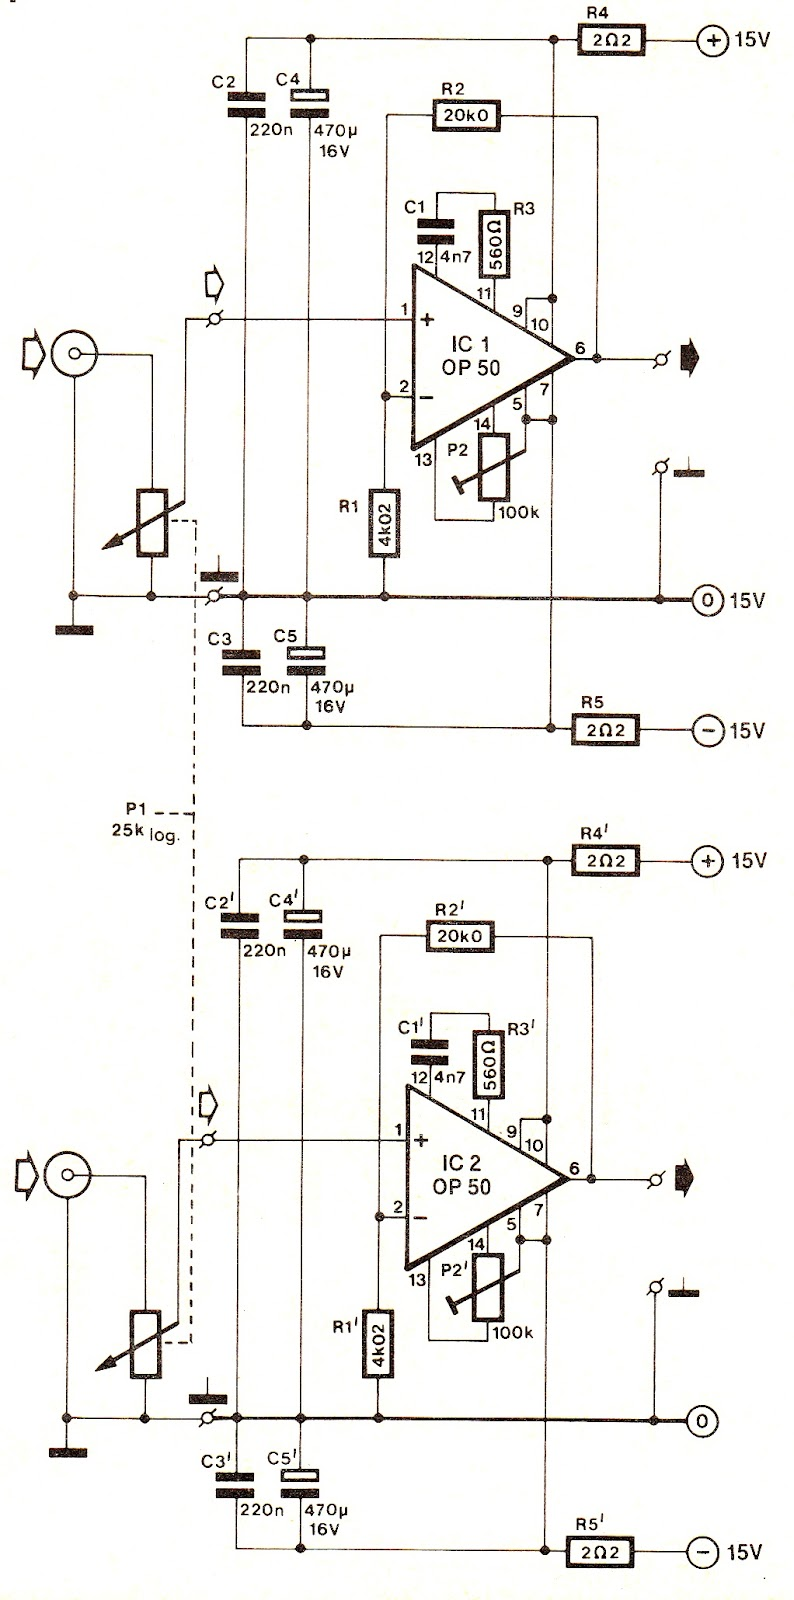 hight resolution of constant electronic load circuit basiccircuit circuit diagram constant electronic load circuit basiccircuit circuit diagram